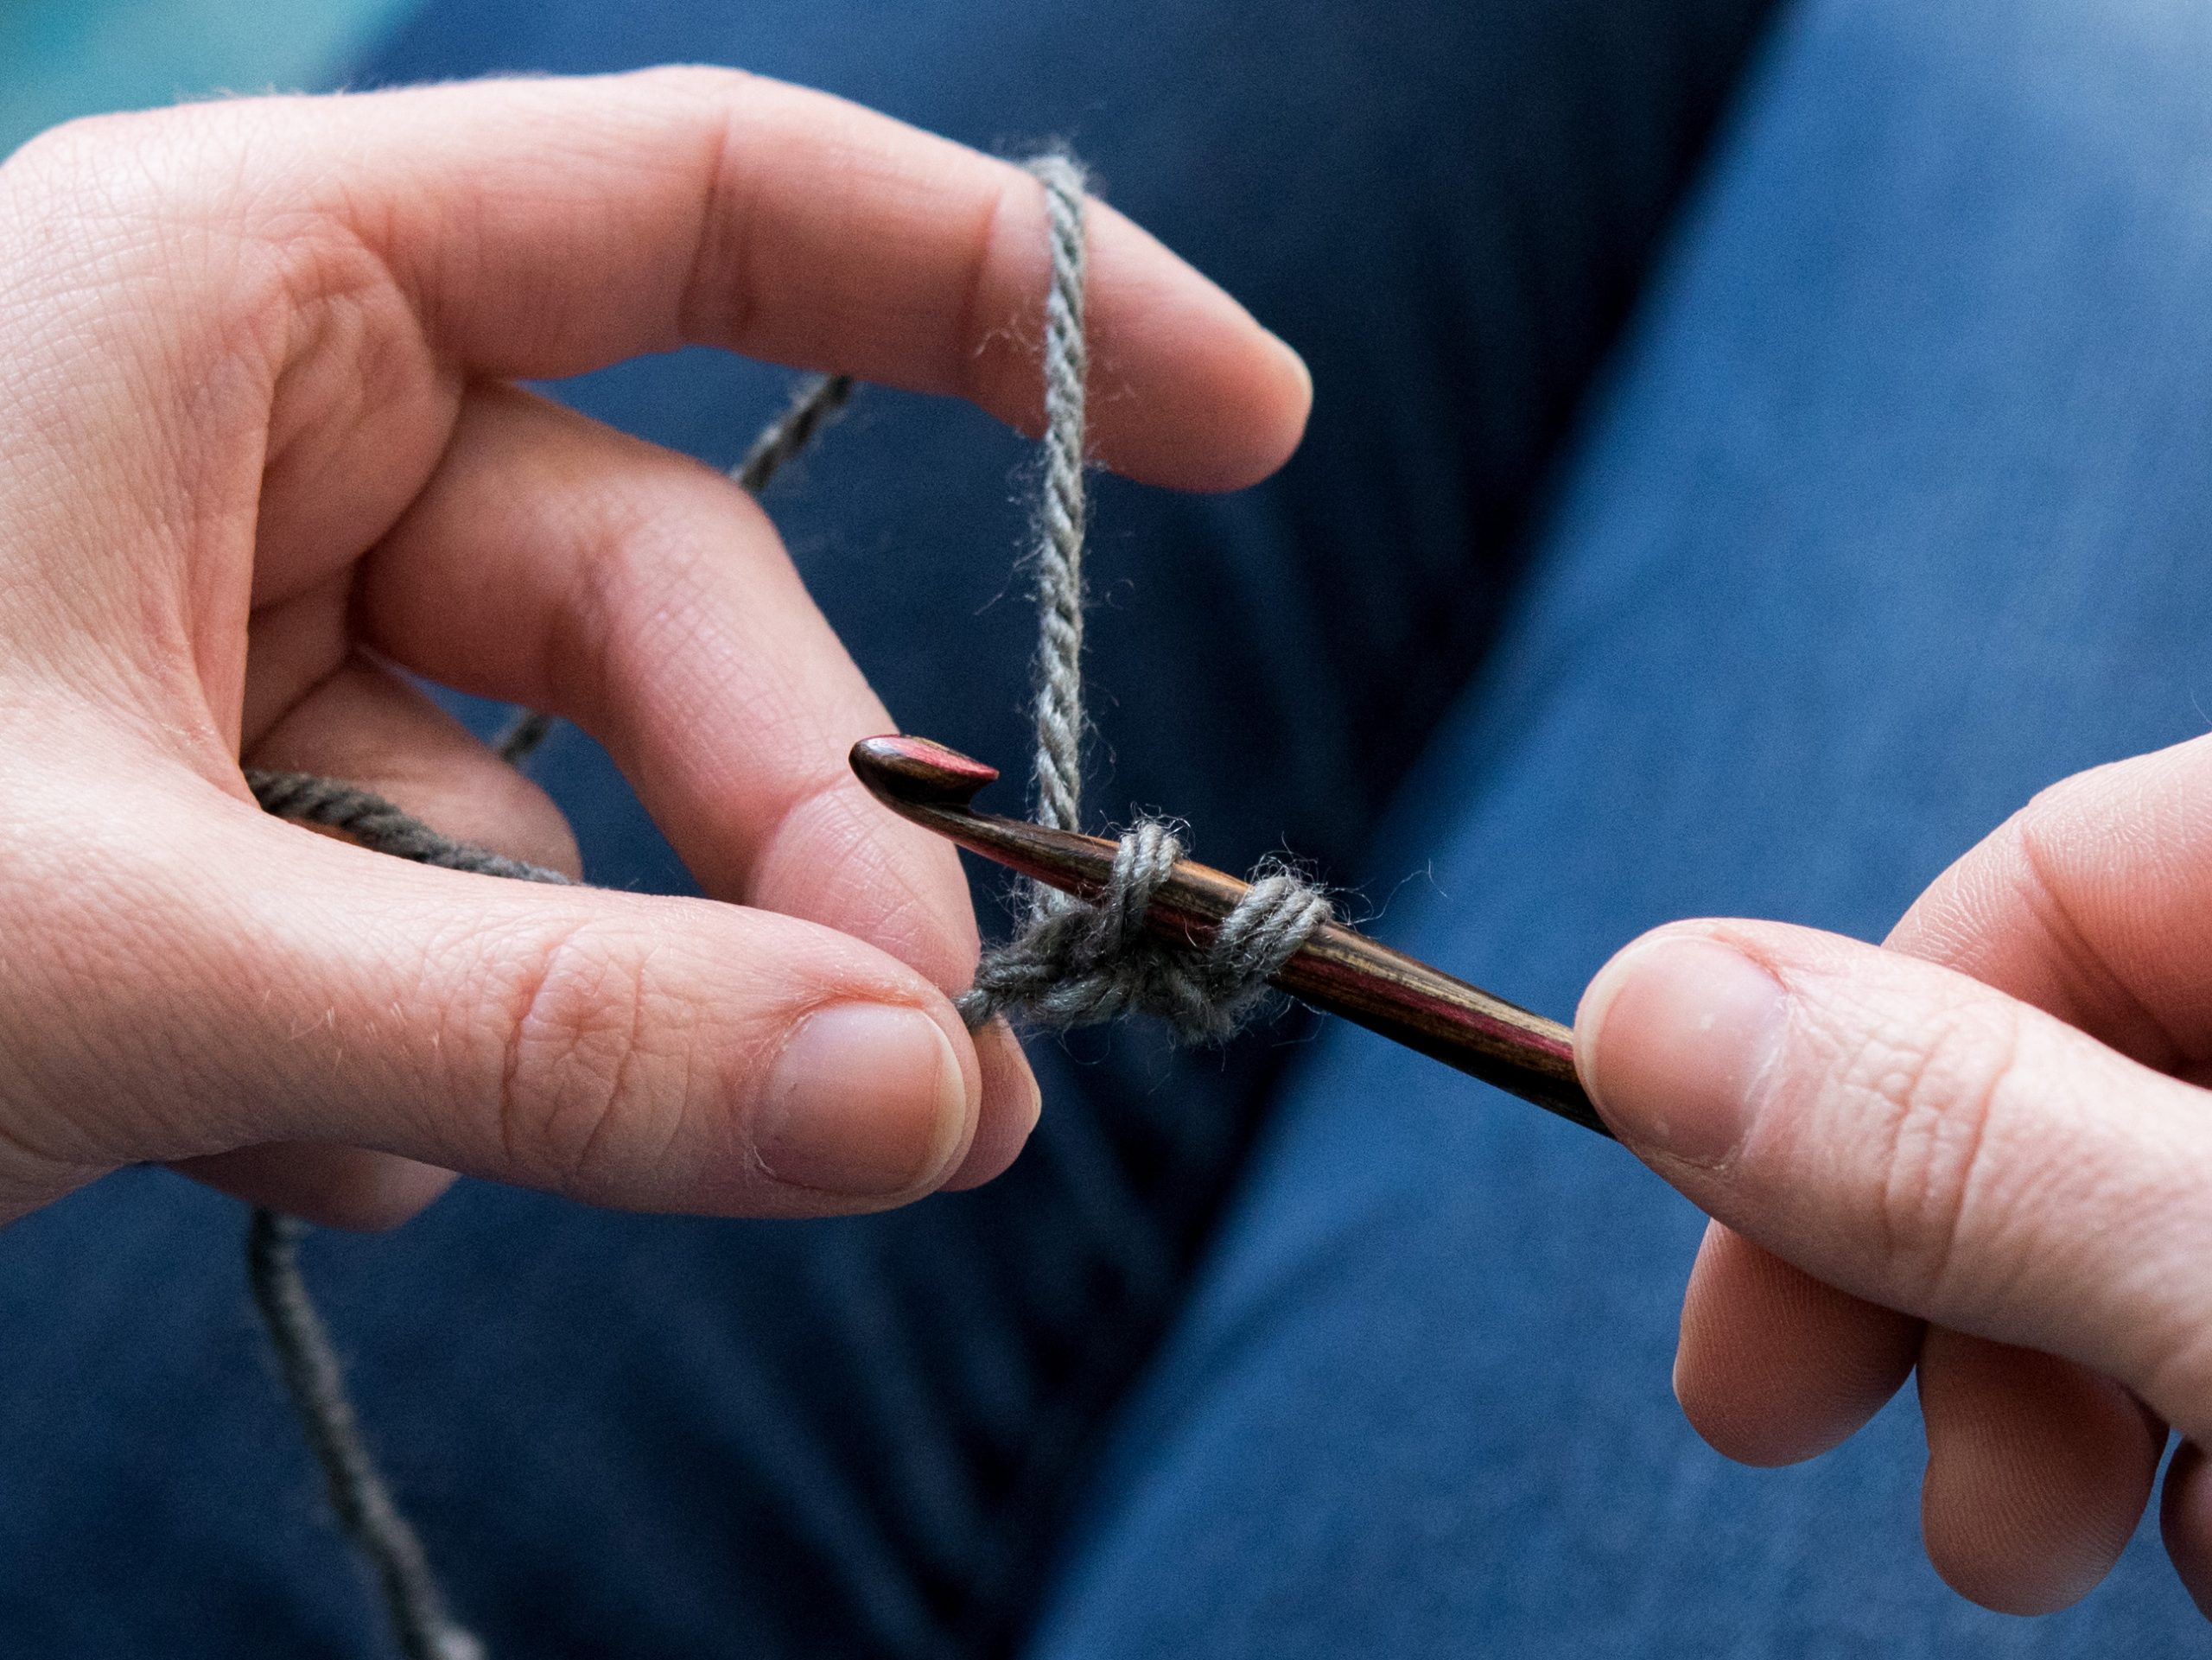 Crocheting with a hook